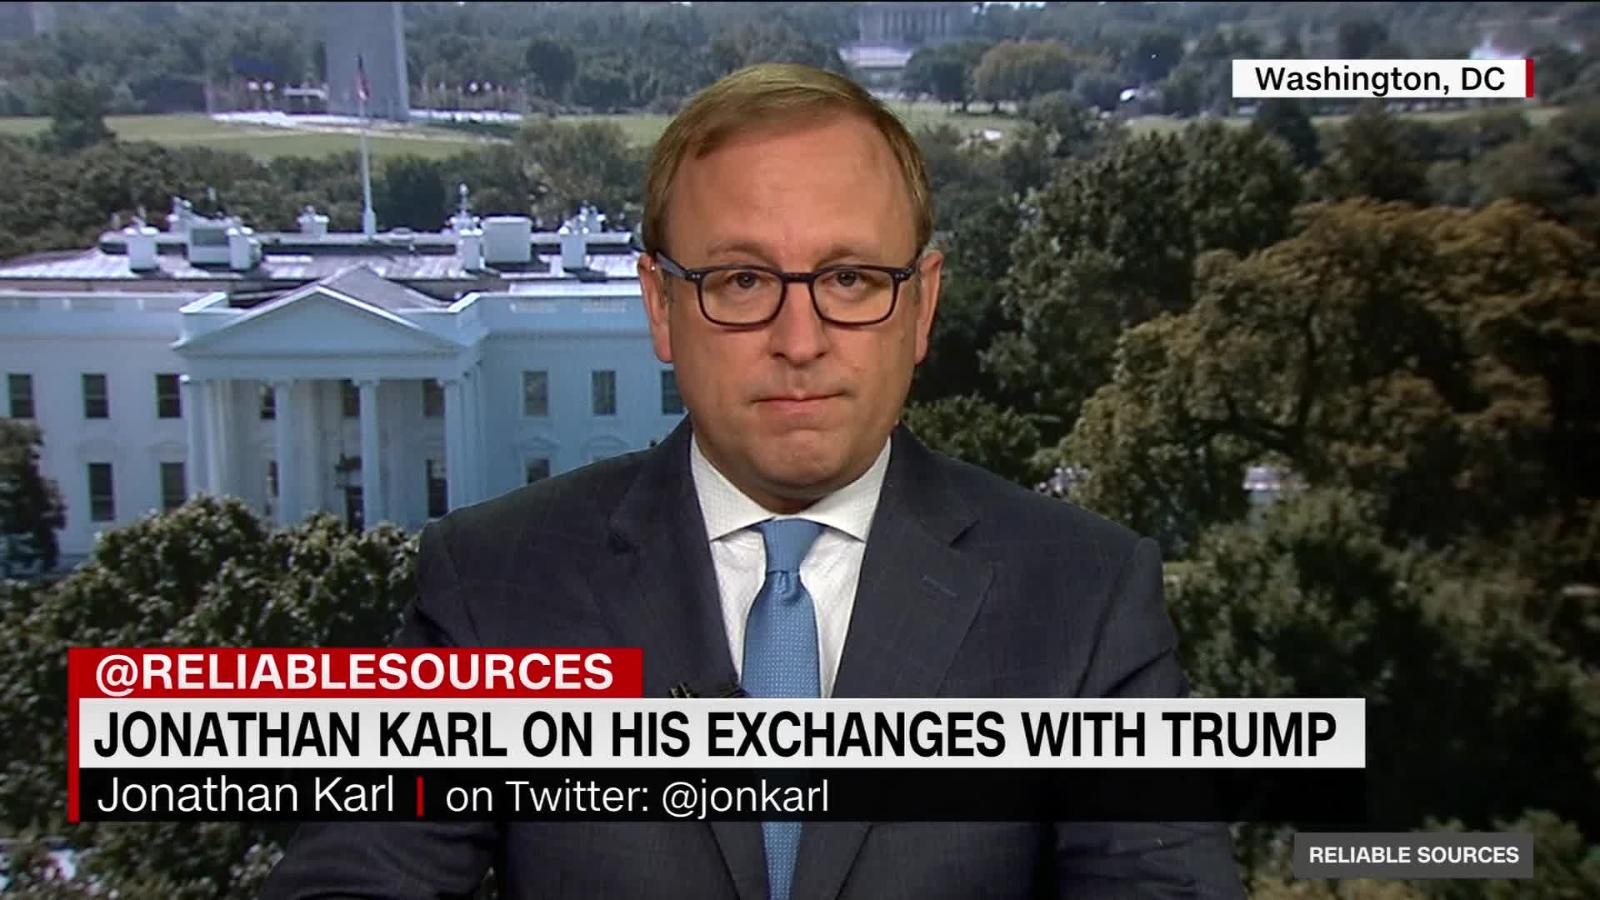 Jon Karl on the moment he asked Trump 'Why did you lie?' - CNN Video